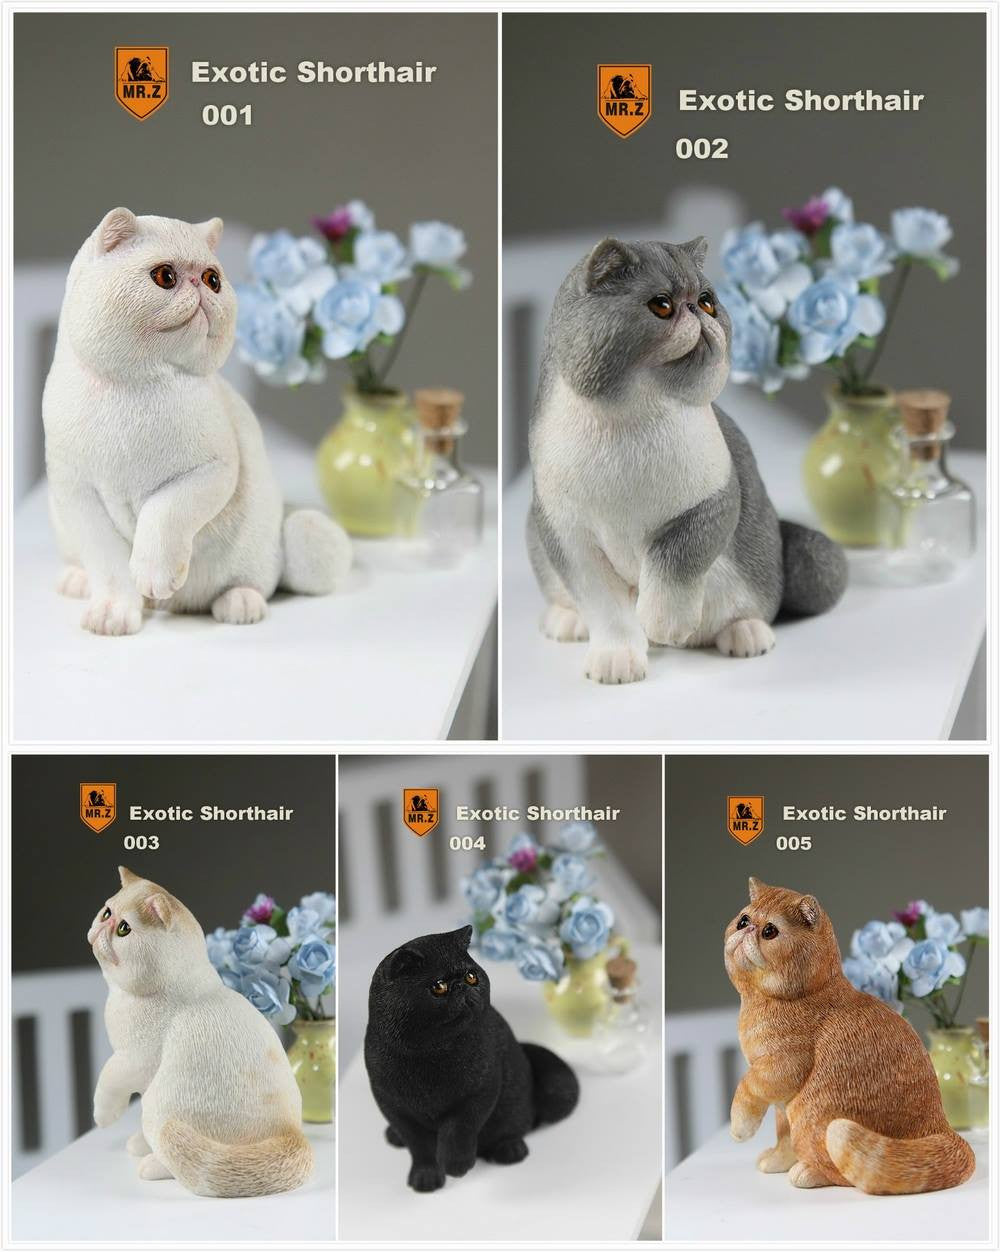 MR.Z - Real Animal Series No.8 - 1/6th Scale Exotic Shorthair Cat (Garfield) 001-005 - Marvelous Toys - 1